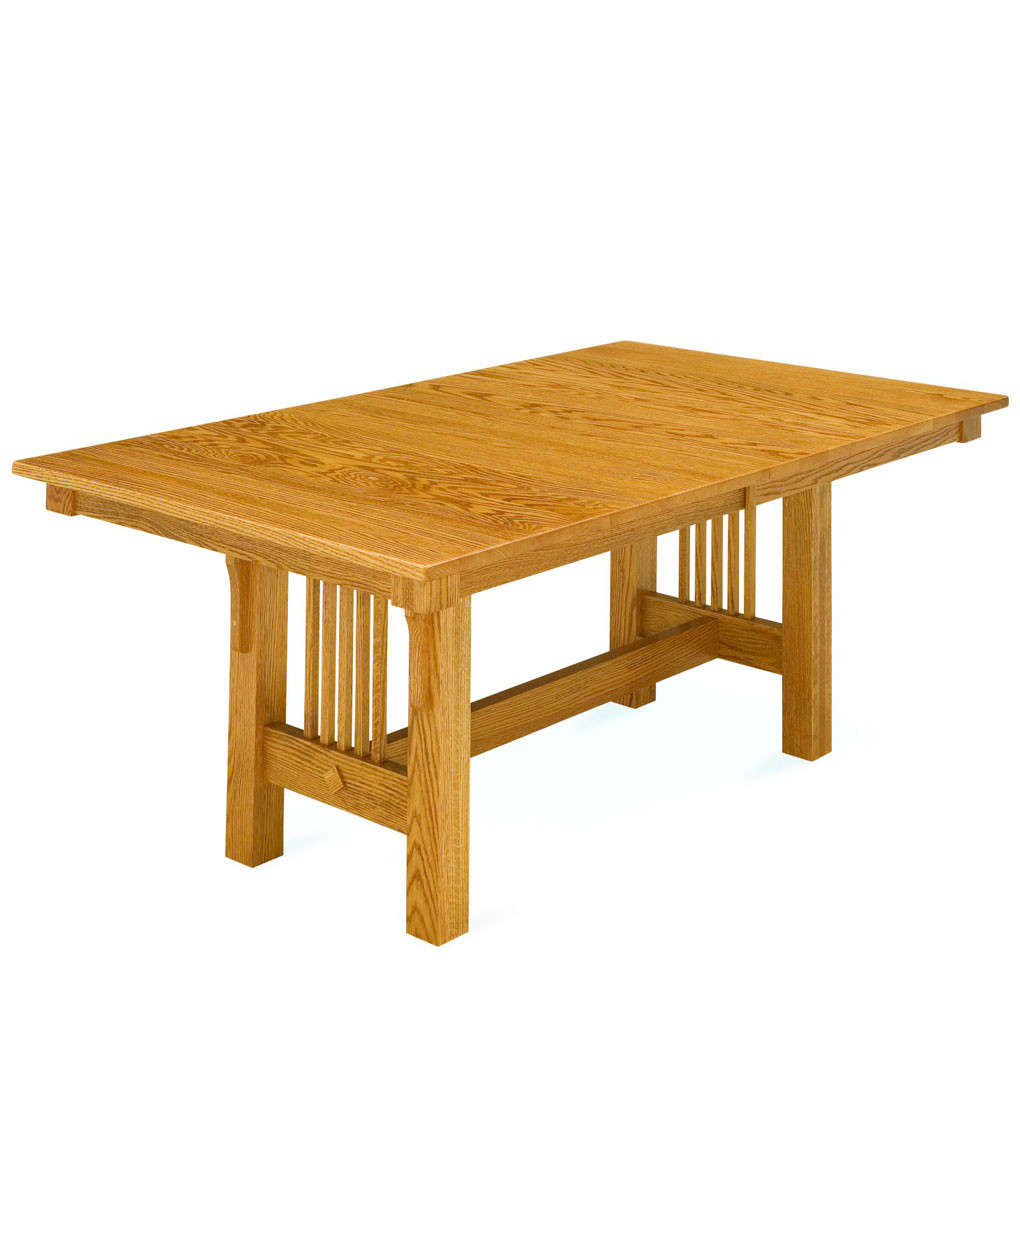 Best ideas about Trestle Dining Table . Save or Pin Trestle Mission Dining Table Amish Direct Furniture Now.